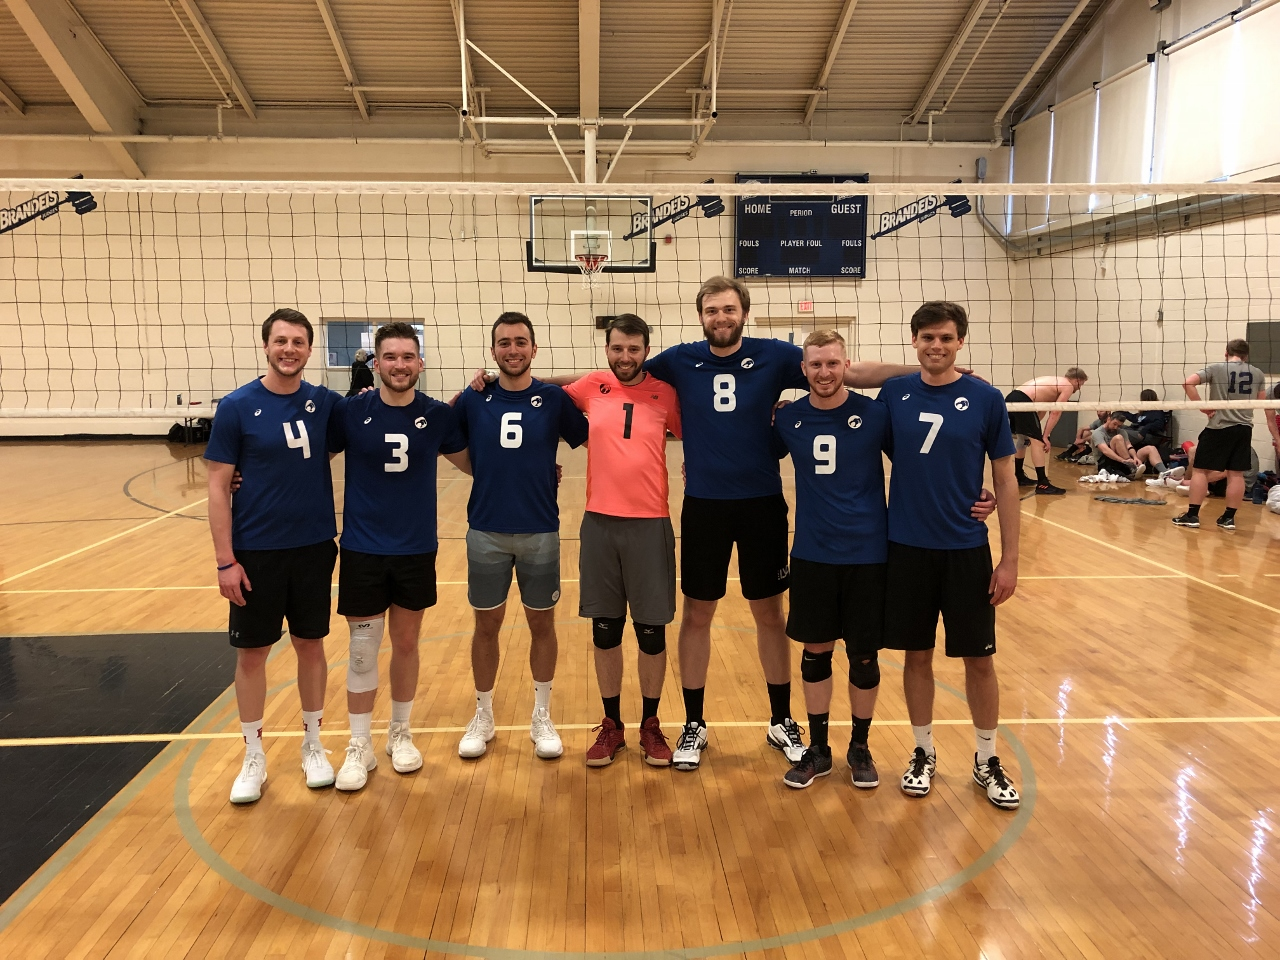 4/28/19 Thundercats defeat #Swag to win MAA at Brandeis